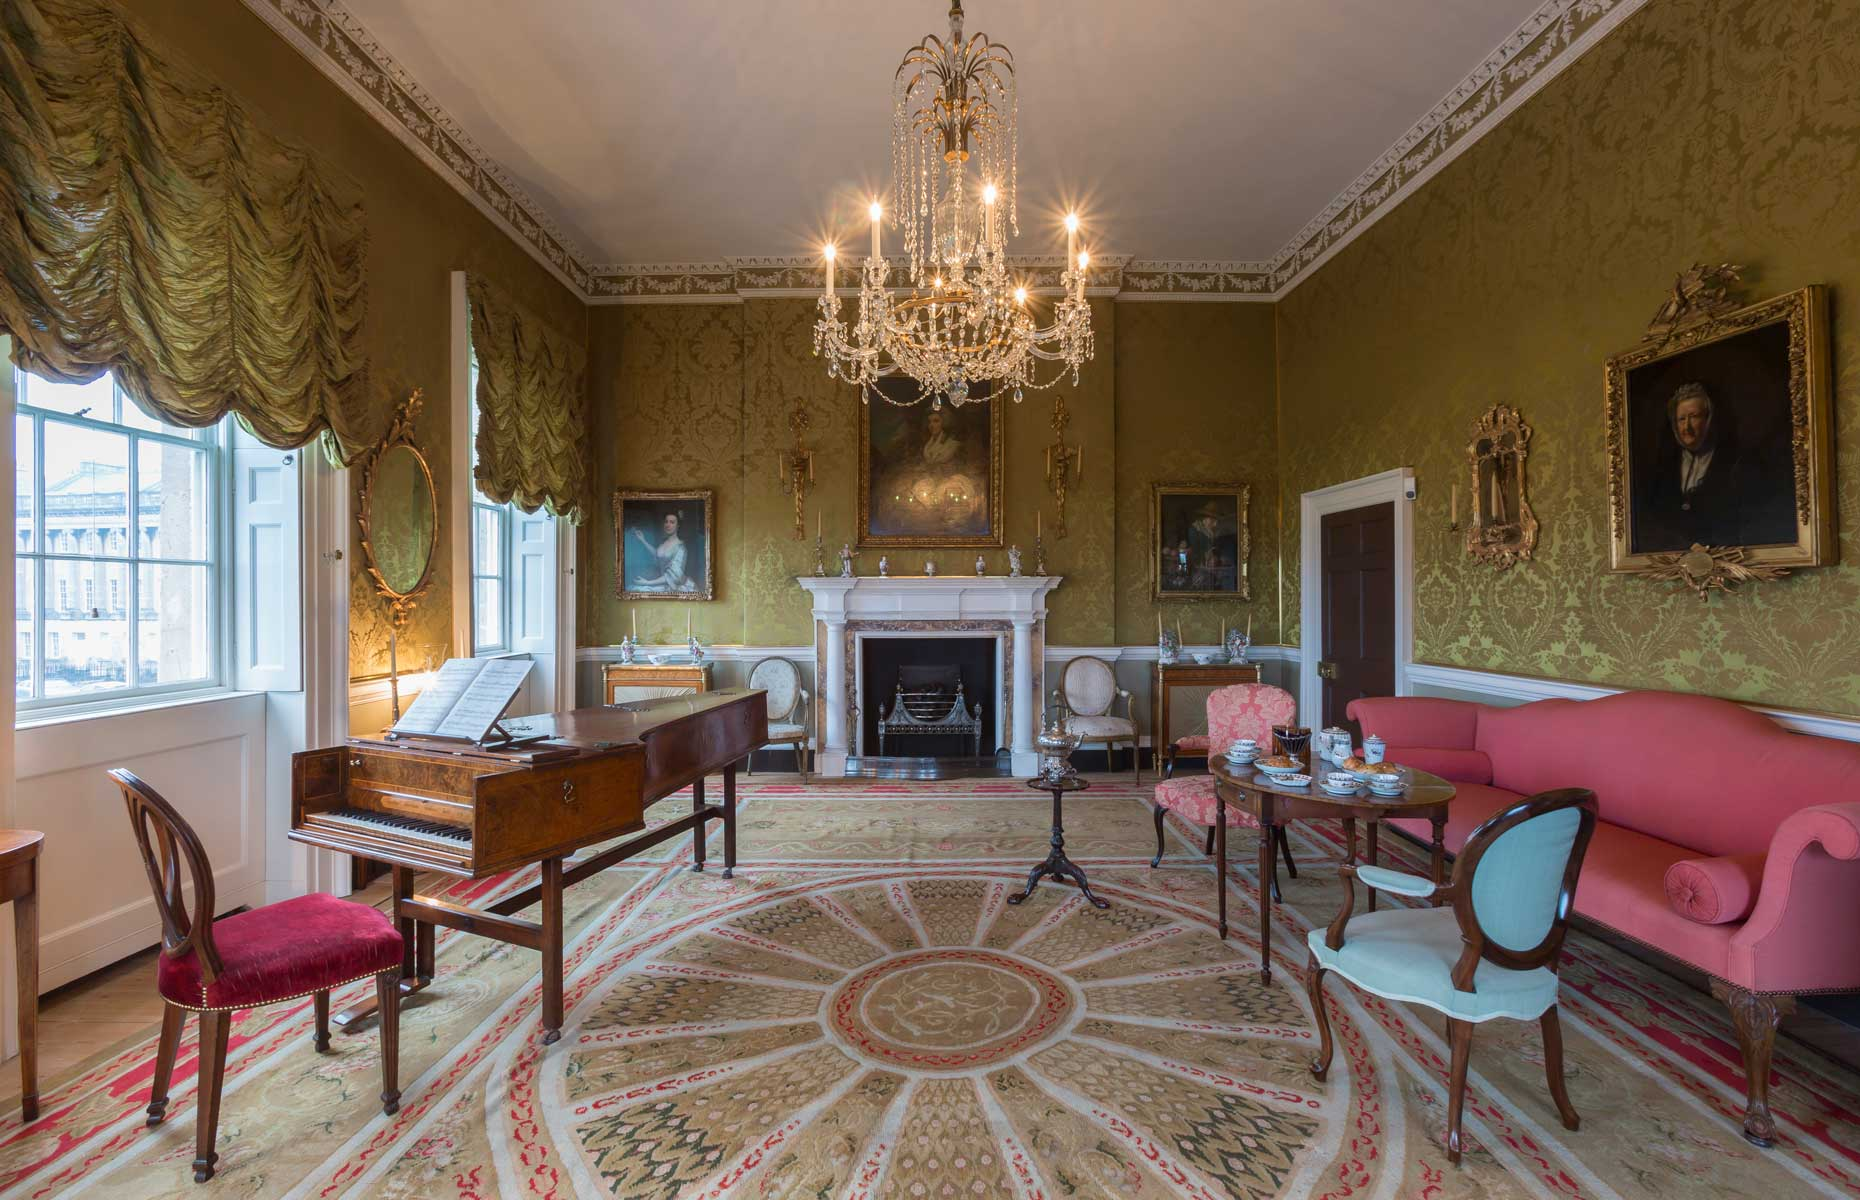 No.1 Royal Crescent is now a museum